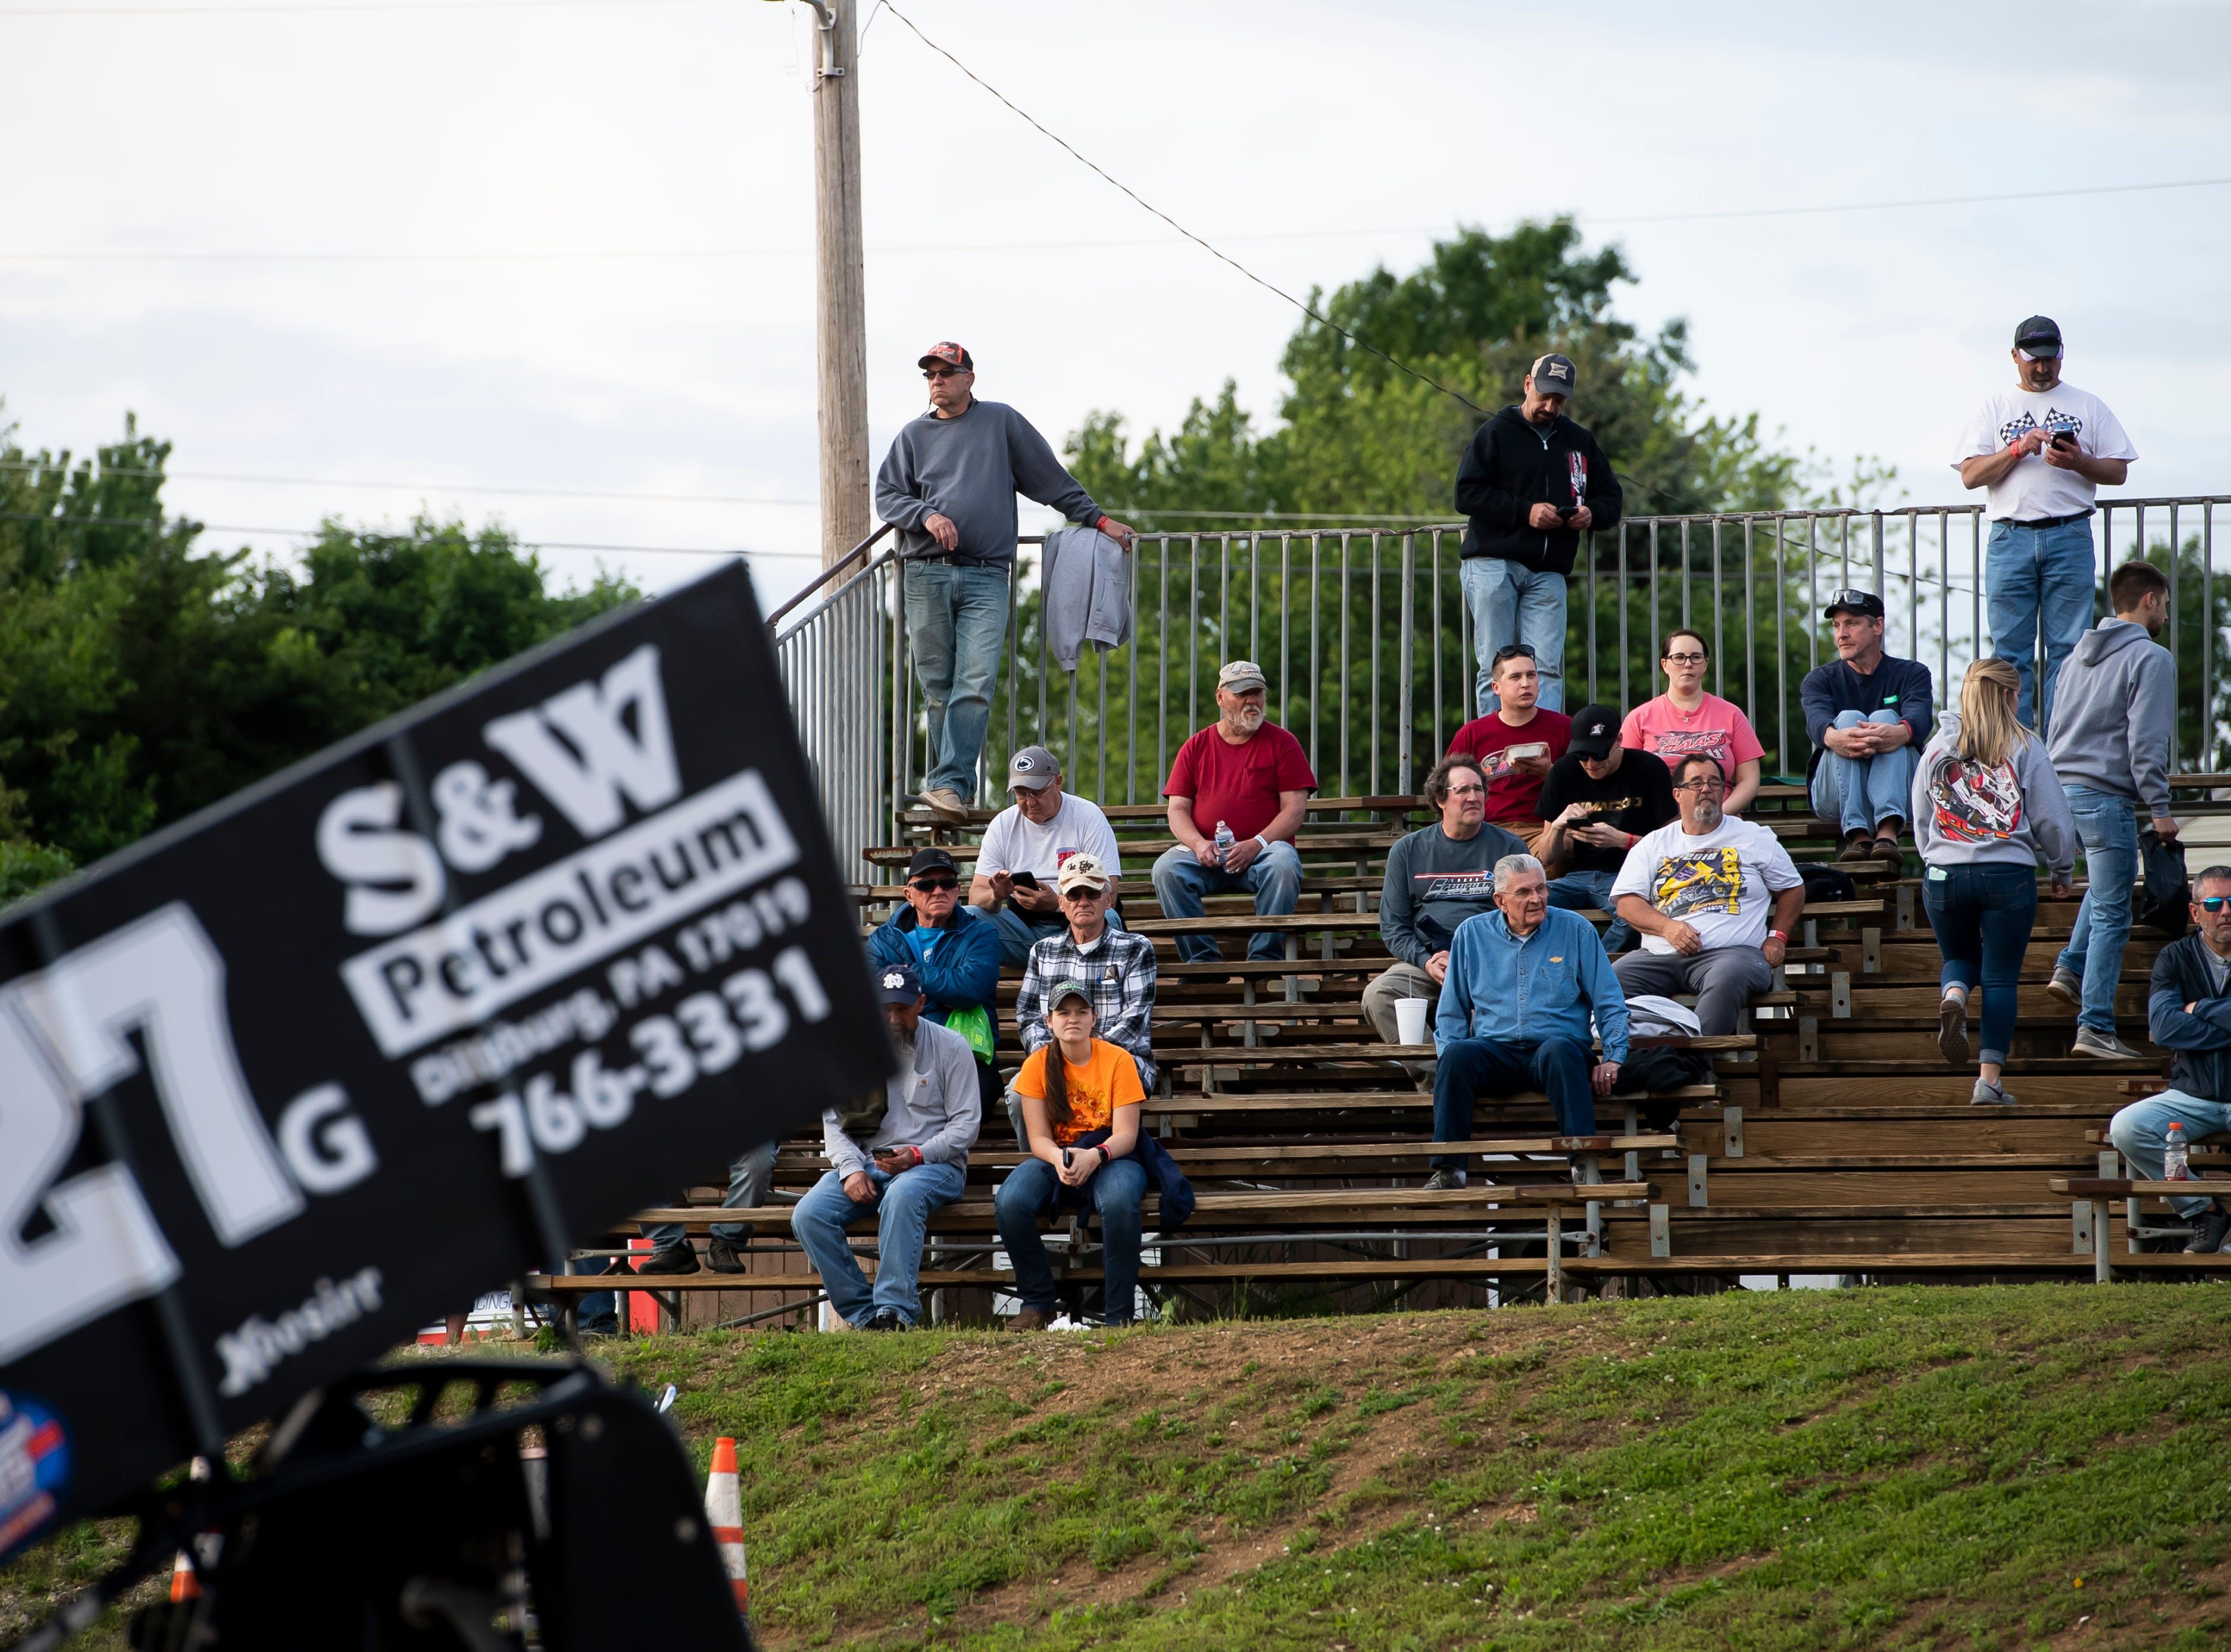 Spectators fill the stands as Jay Gallow and the 27G car races in the time trials during the World of Outlaws Gettysburg Clash at Lincoln Speedway in Abbottstown on Wednesday, May 15, 2019.